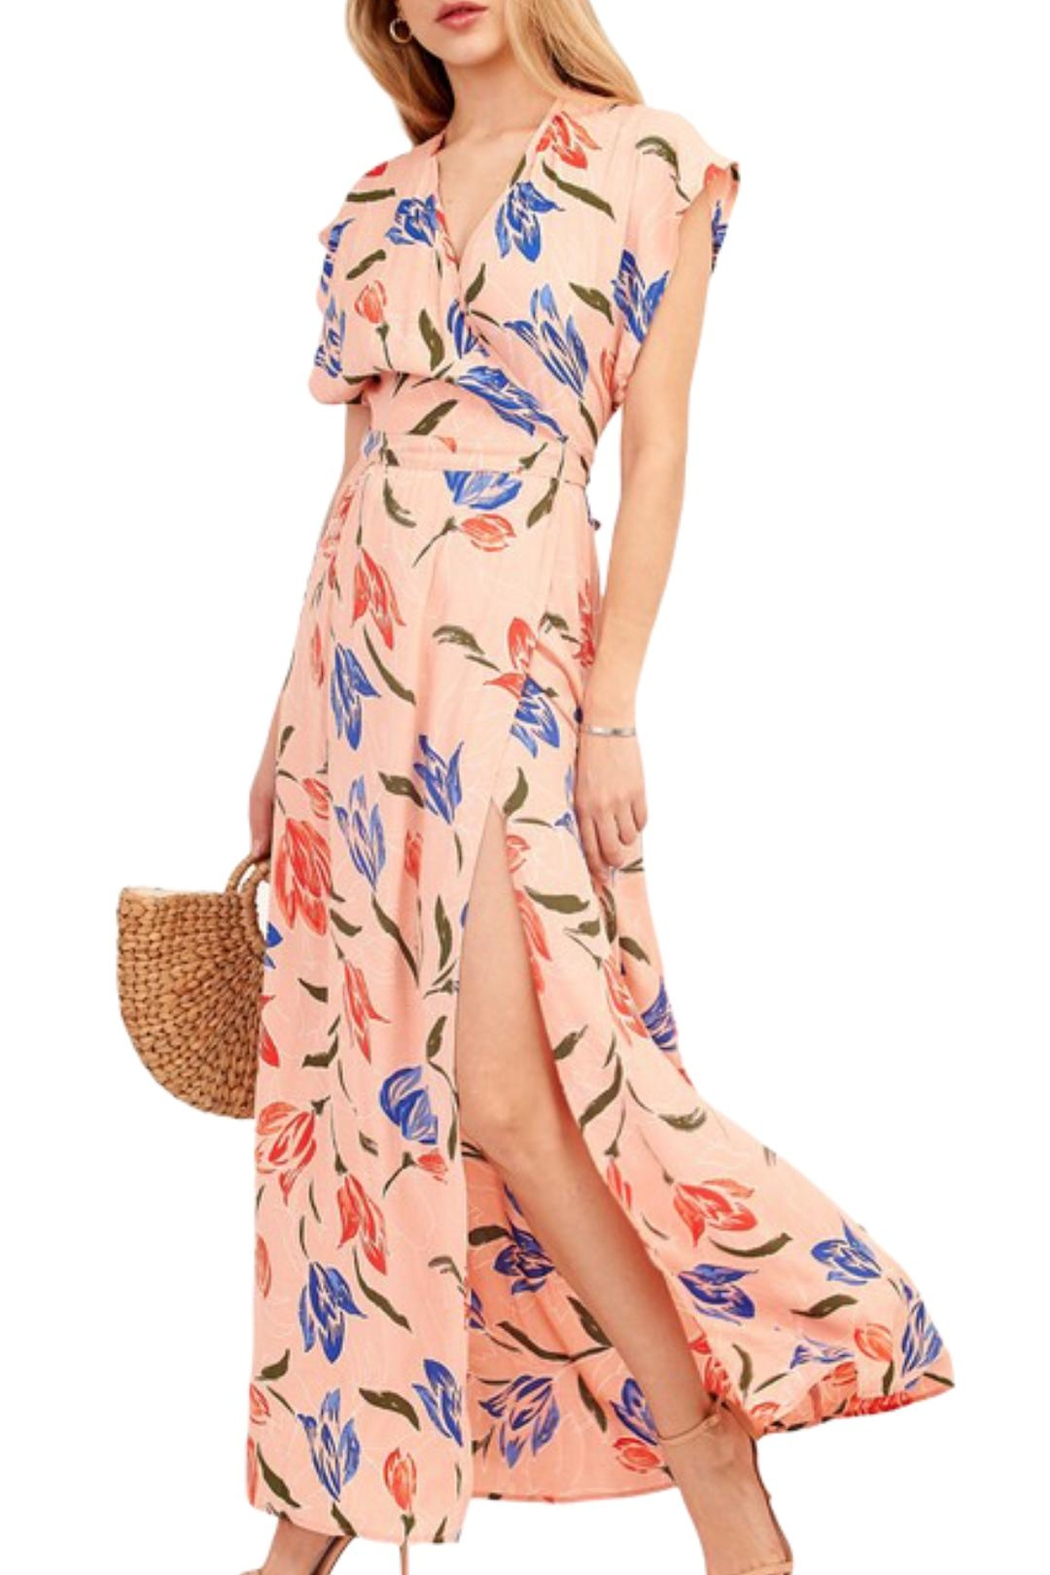 Earthy Chic Nidia Floral Dress - Main Image